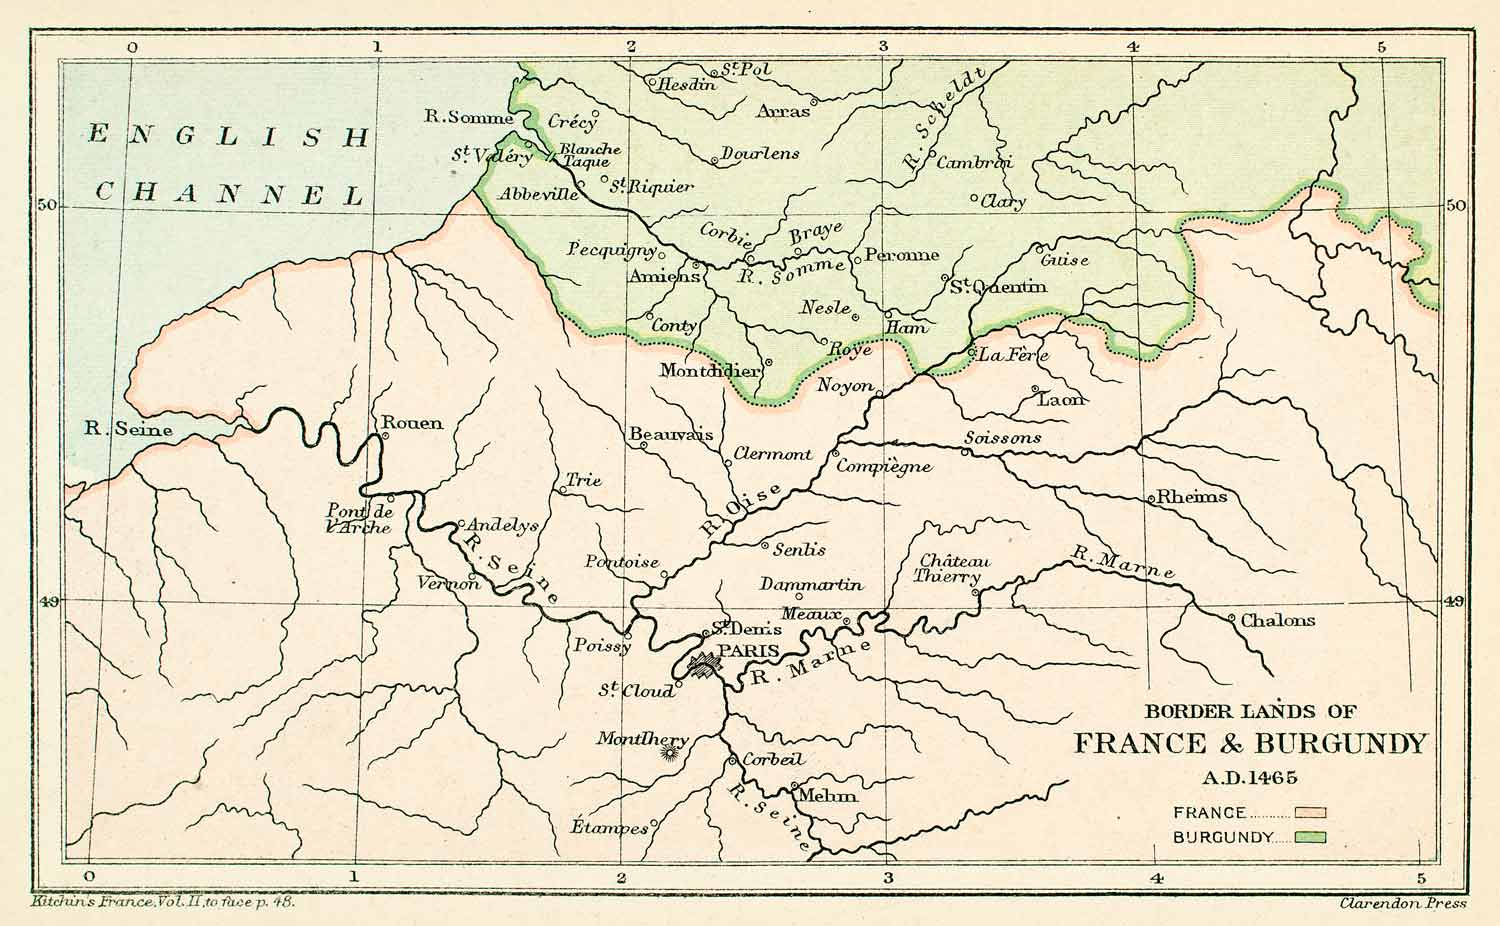 Map Of France In English.1896 Lithograph Map France Burgundy English Channel River Seine Marne Paris Xeb2